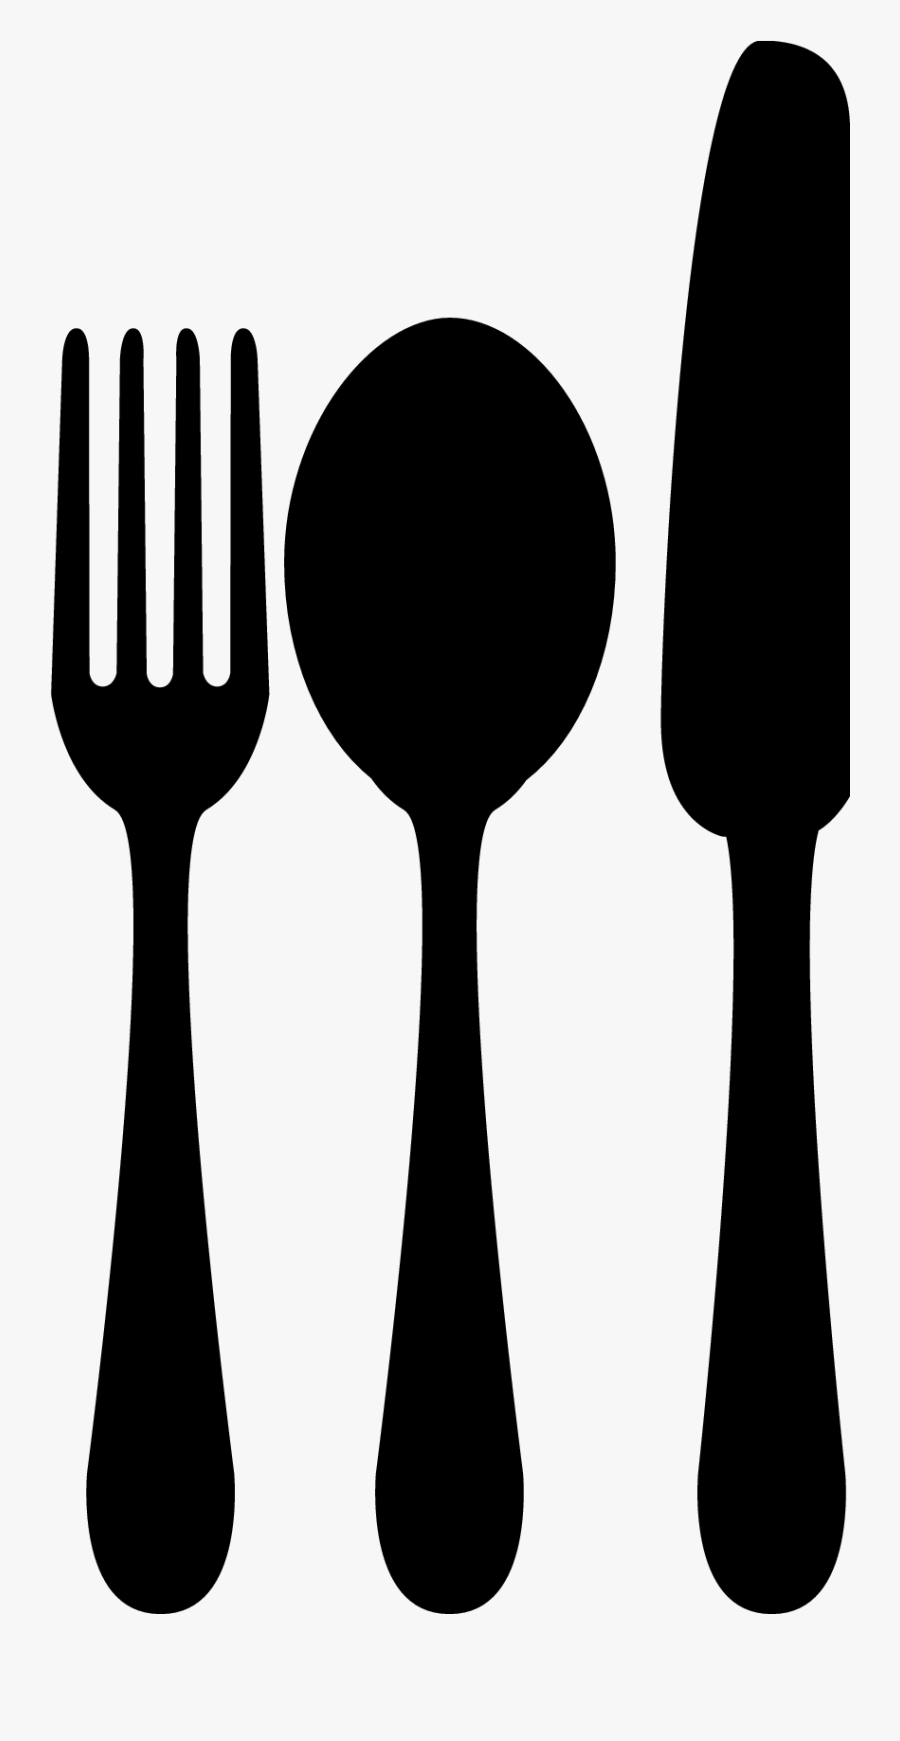 Spoon Fork Knife - Fork Spoon Knife Clipart, Transparent Clipart